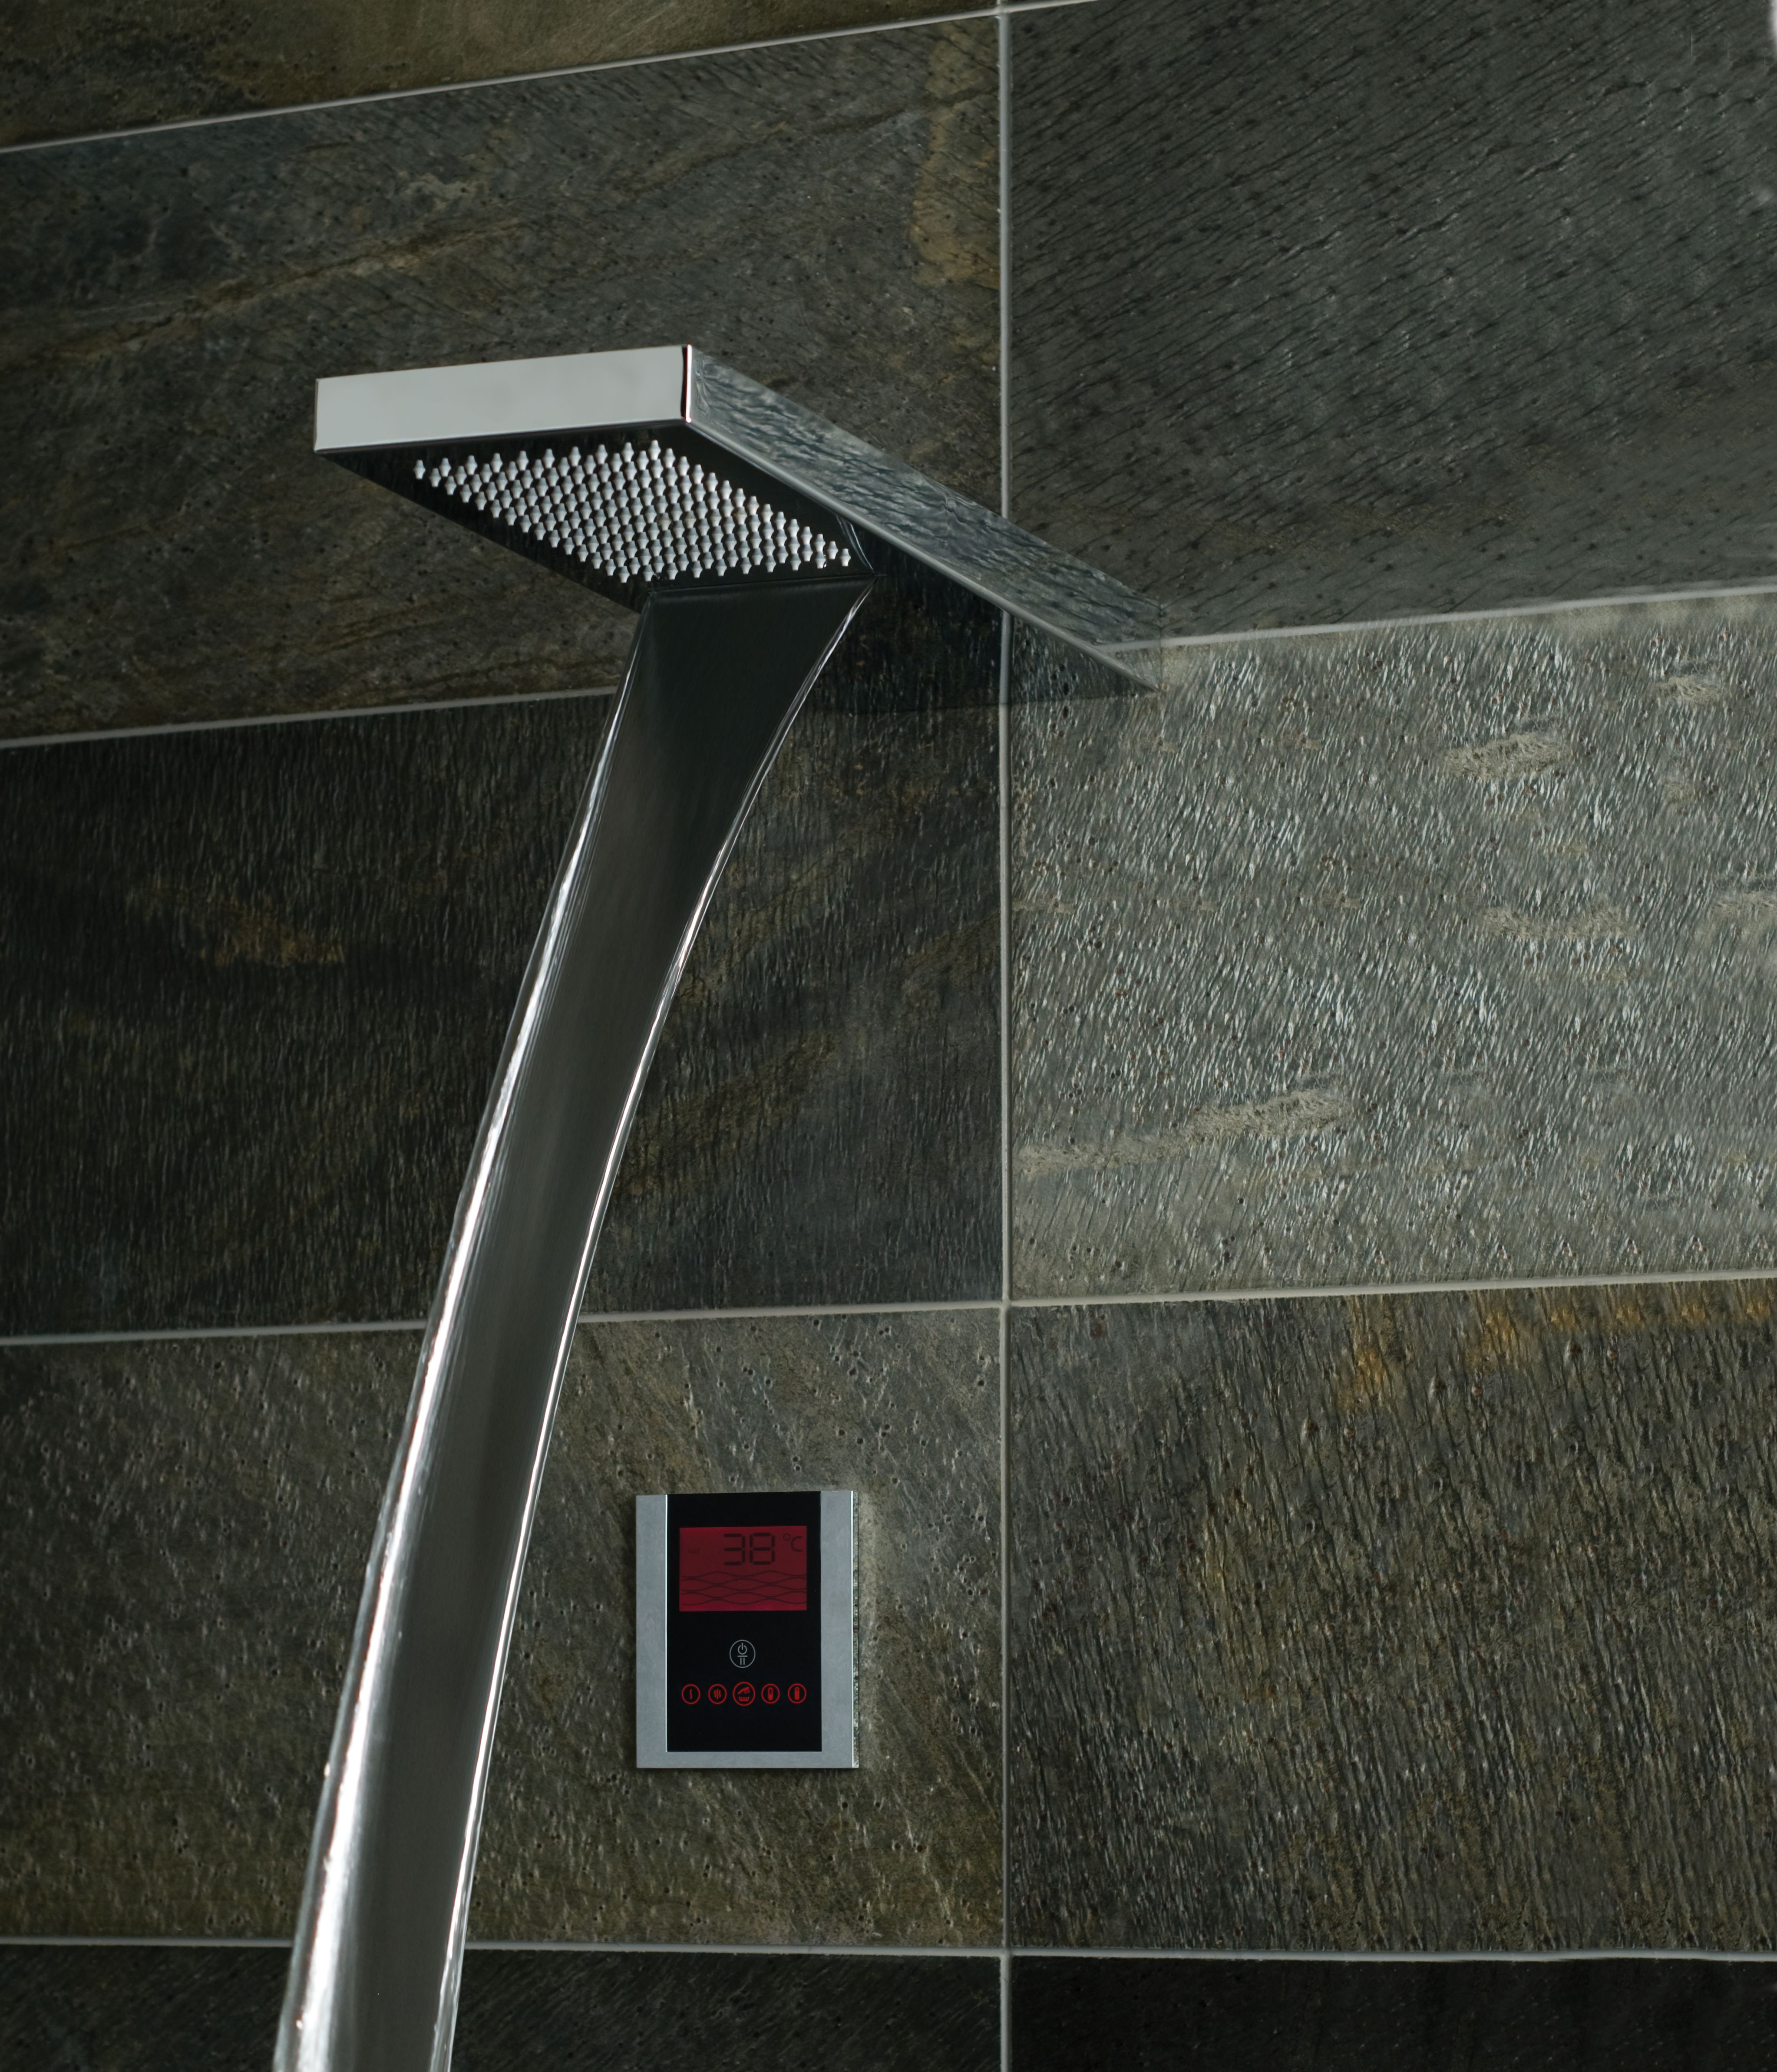 The VADO Identity digital shower and INGOT shower head, available ...